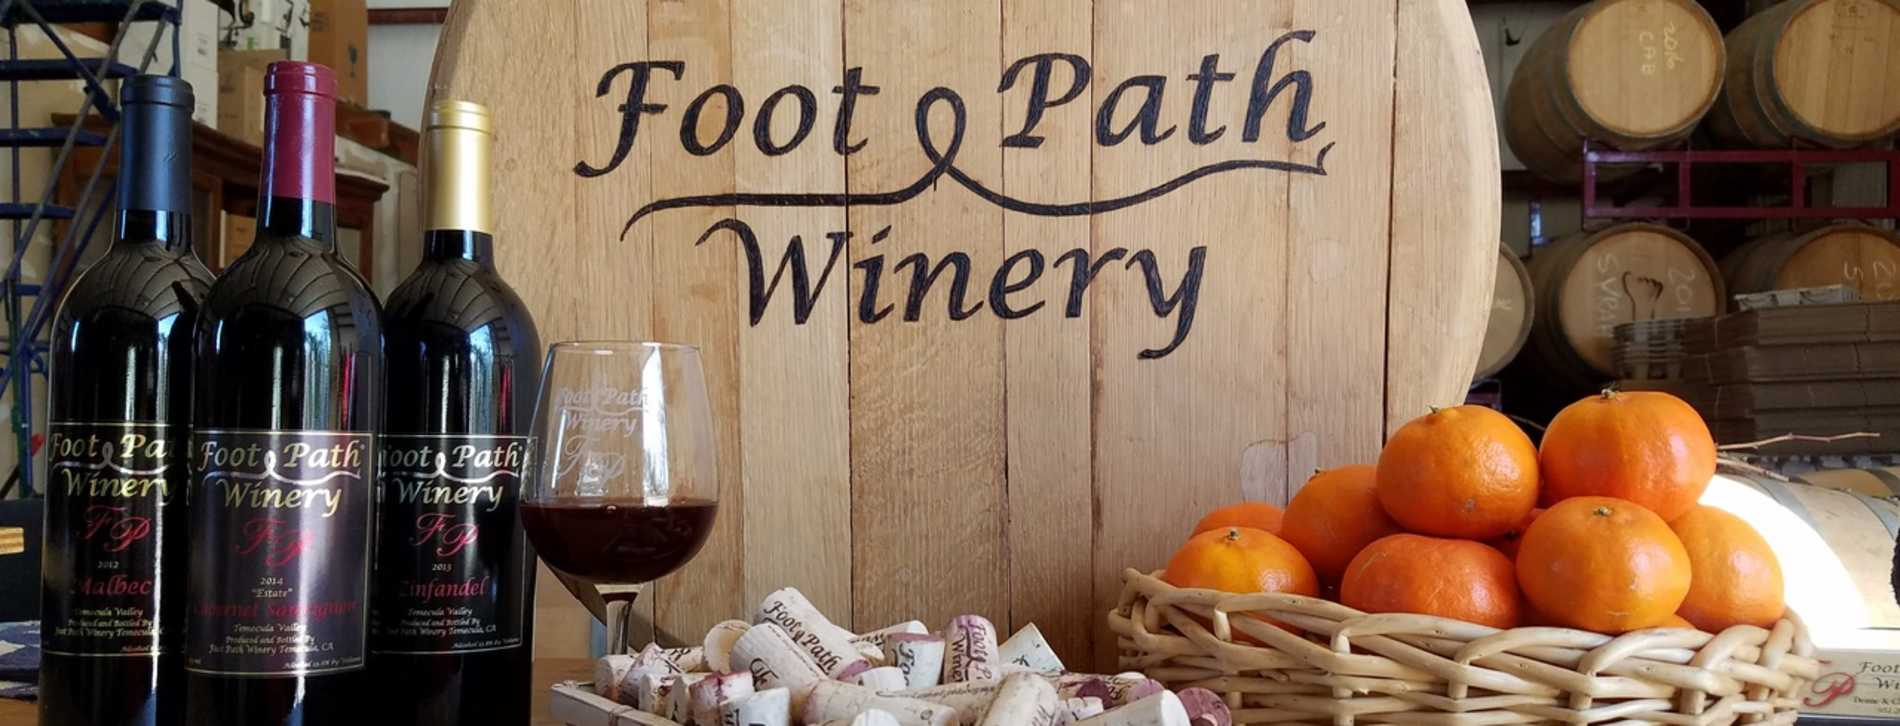 Foot Path Winery - Temecula